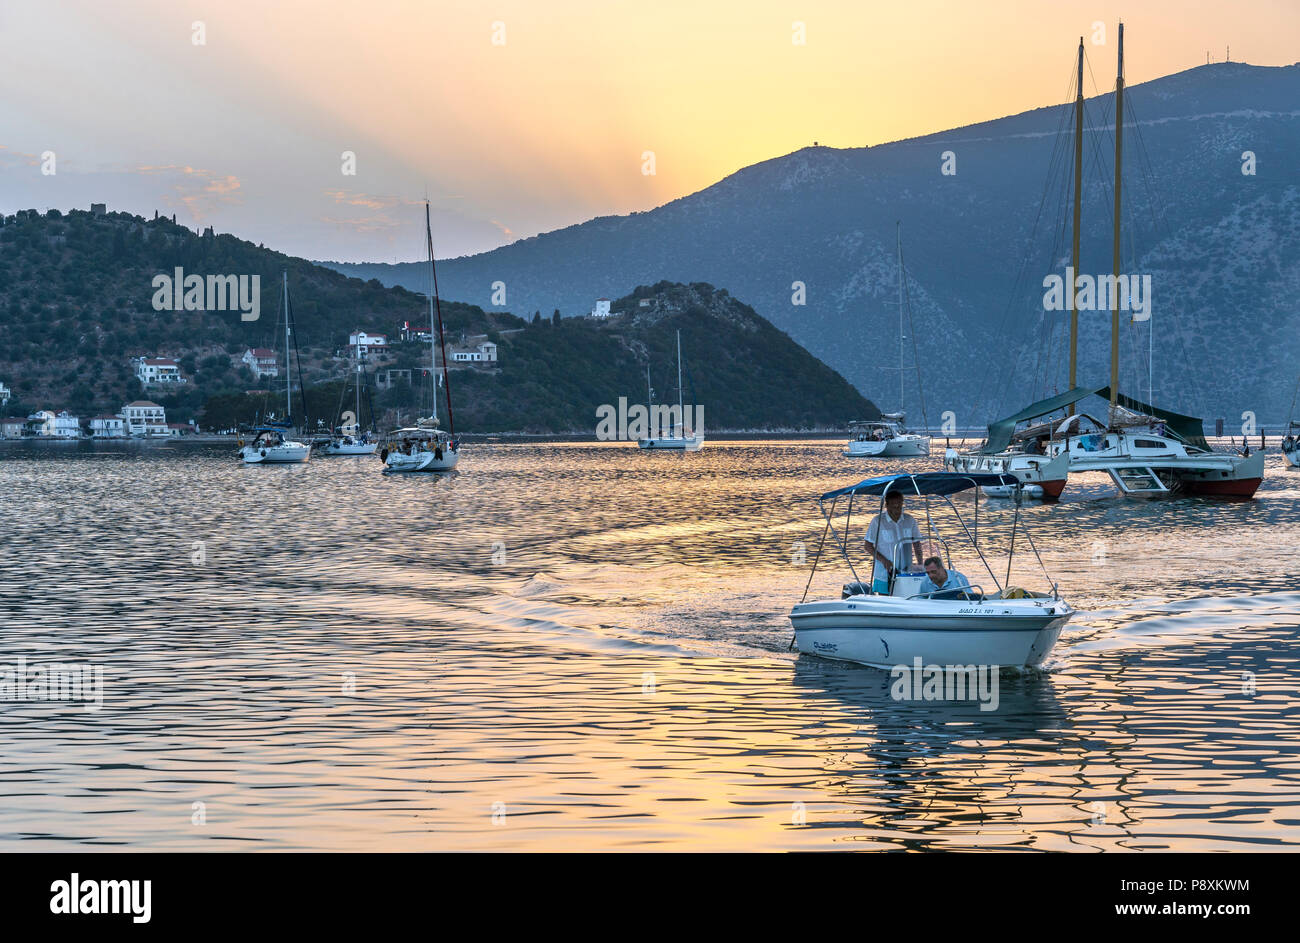 Yachts moored in Vathy harbour at sunset. On the island of Ithaca, Ionian Sea, Greece - Stock Image